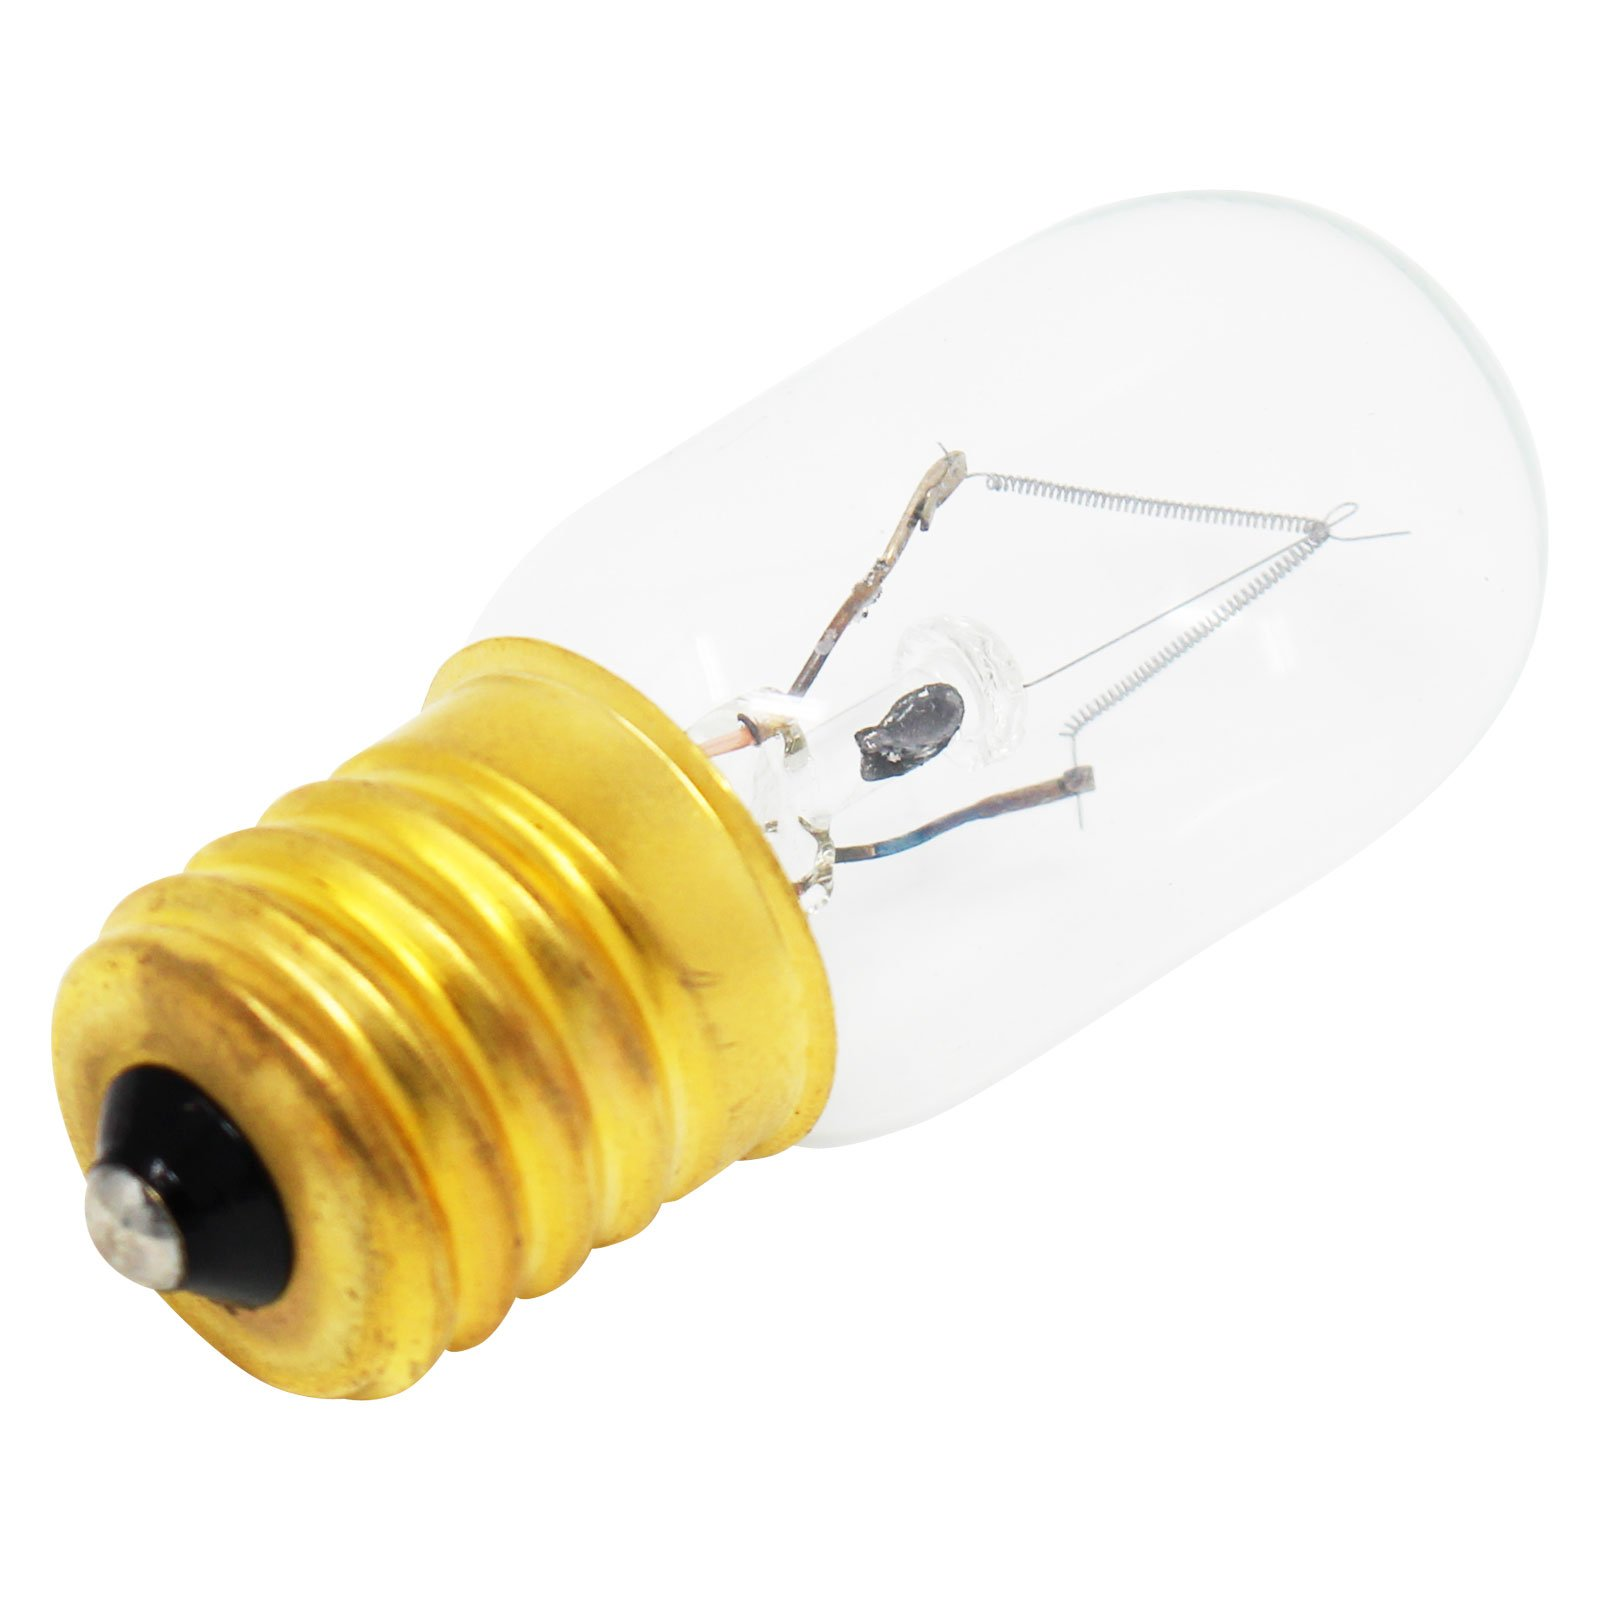 Replacement Light Bulb for Whirlpool WMH75520AS0 Microwave - Compatible Whirlpool 8206232A Light Bulb